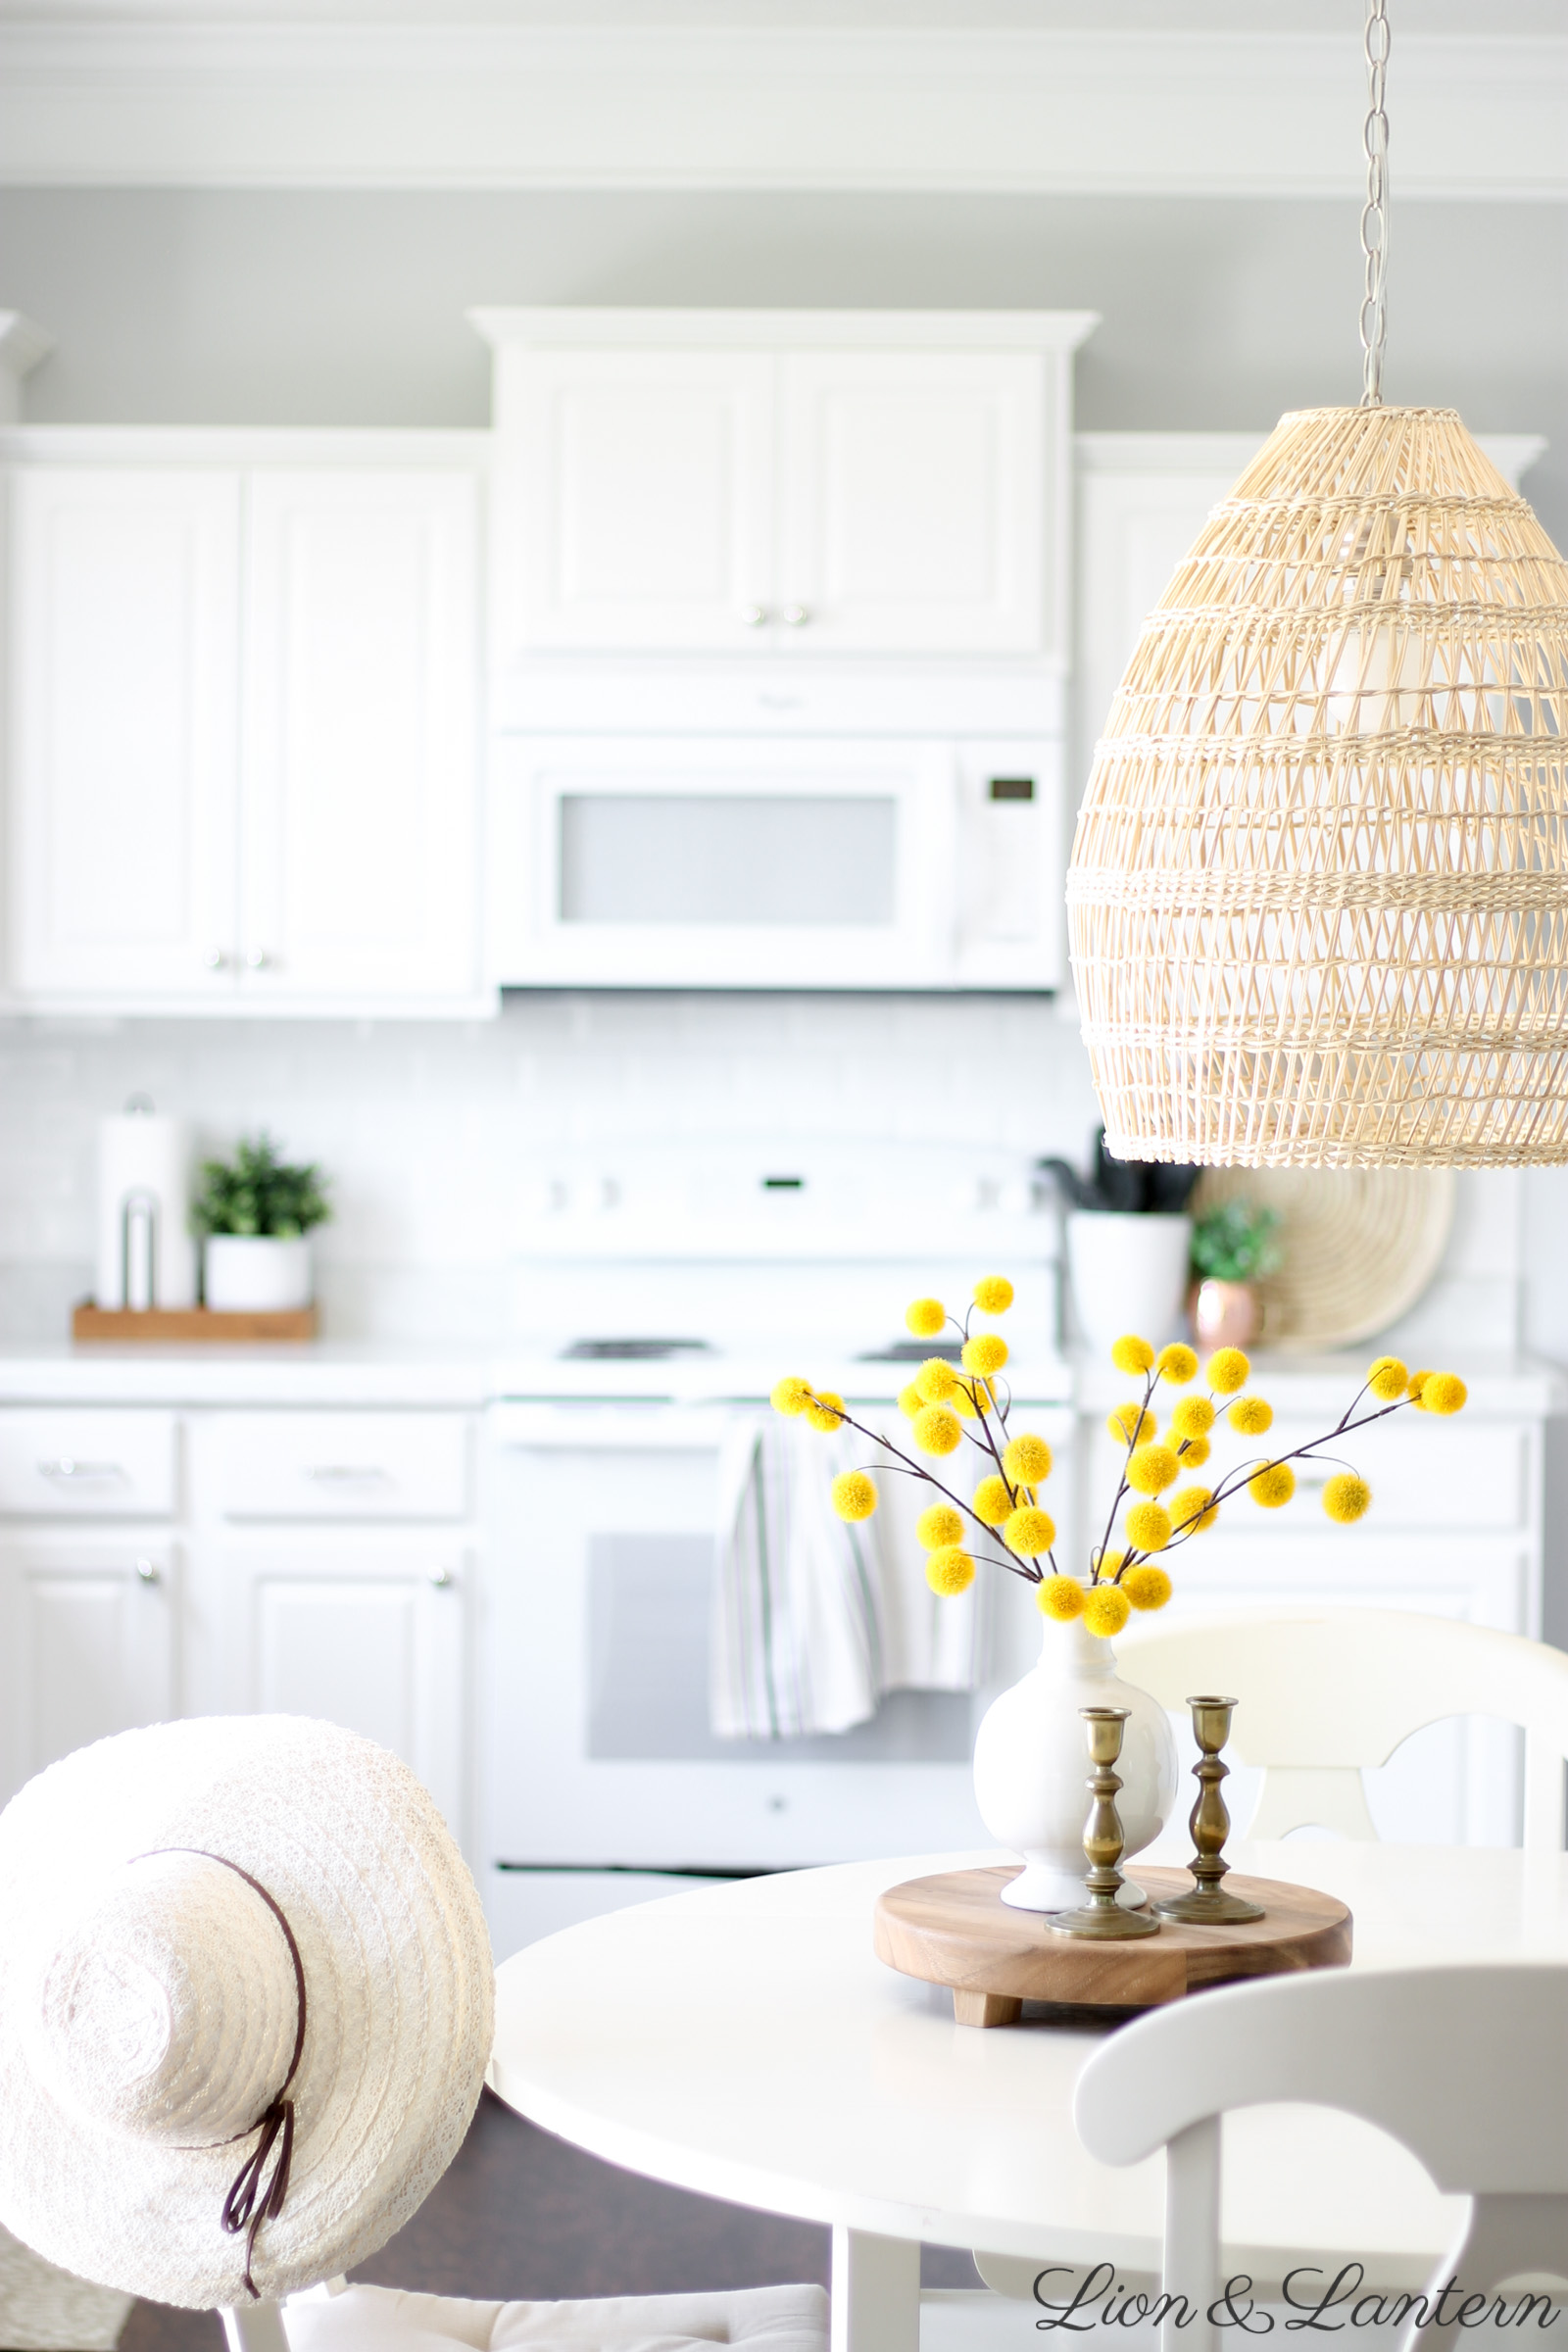 Fall Kitchen & New Textured Pendant Light at LionAndLantern.com | fall decor, autumn decor, fall inspiration, white subway tile, white kitchen, white appliances, seagrass tray